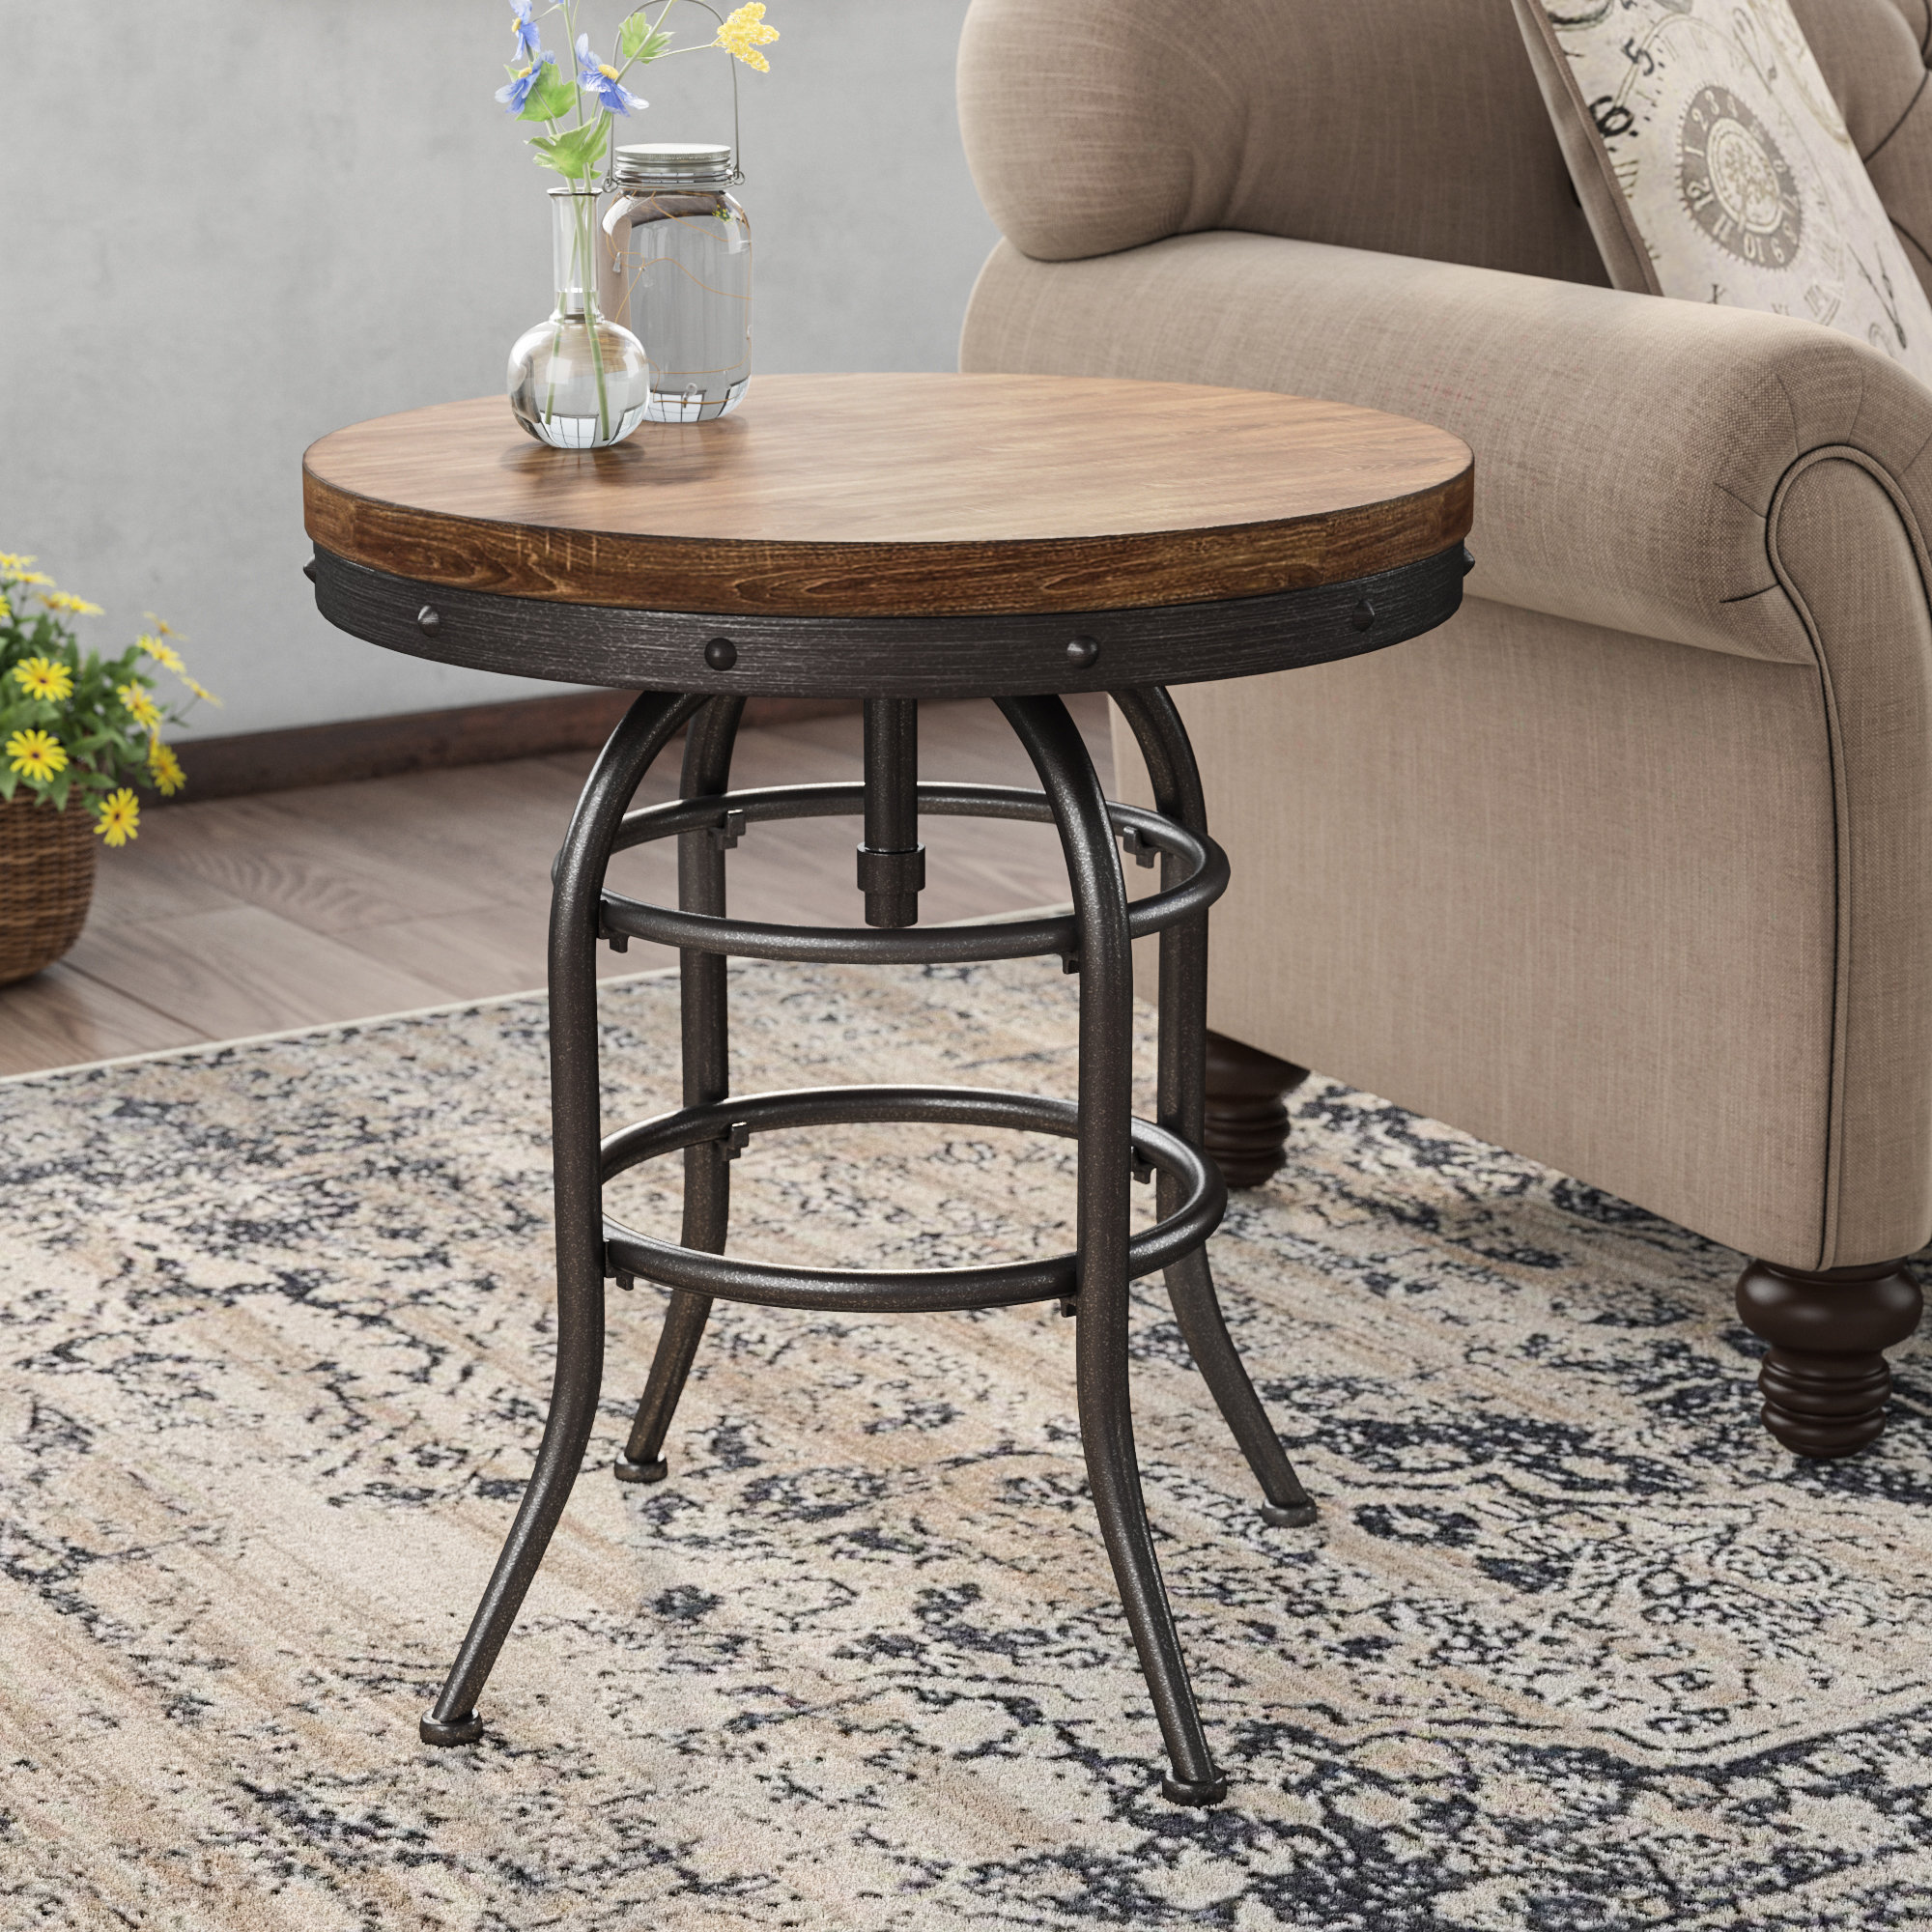 inch round end table likens wood slab accent free standing wine rack narrow lamp metal coffee with glass top linen cloth stool runner ikea pot small corner cabinet target tables